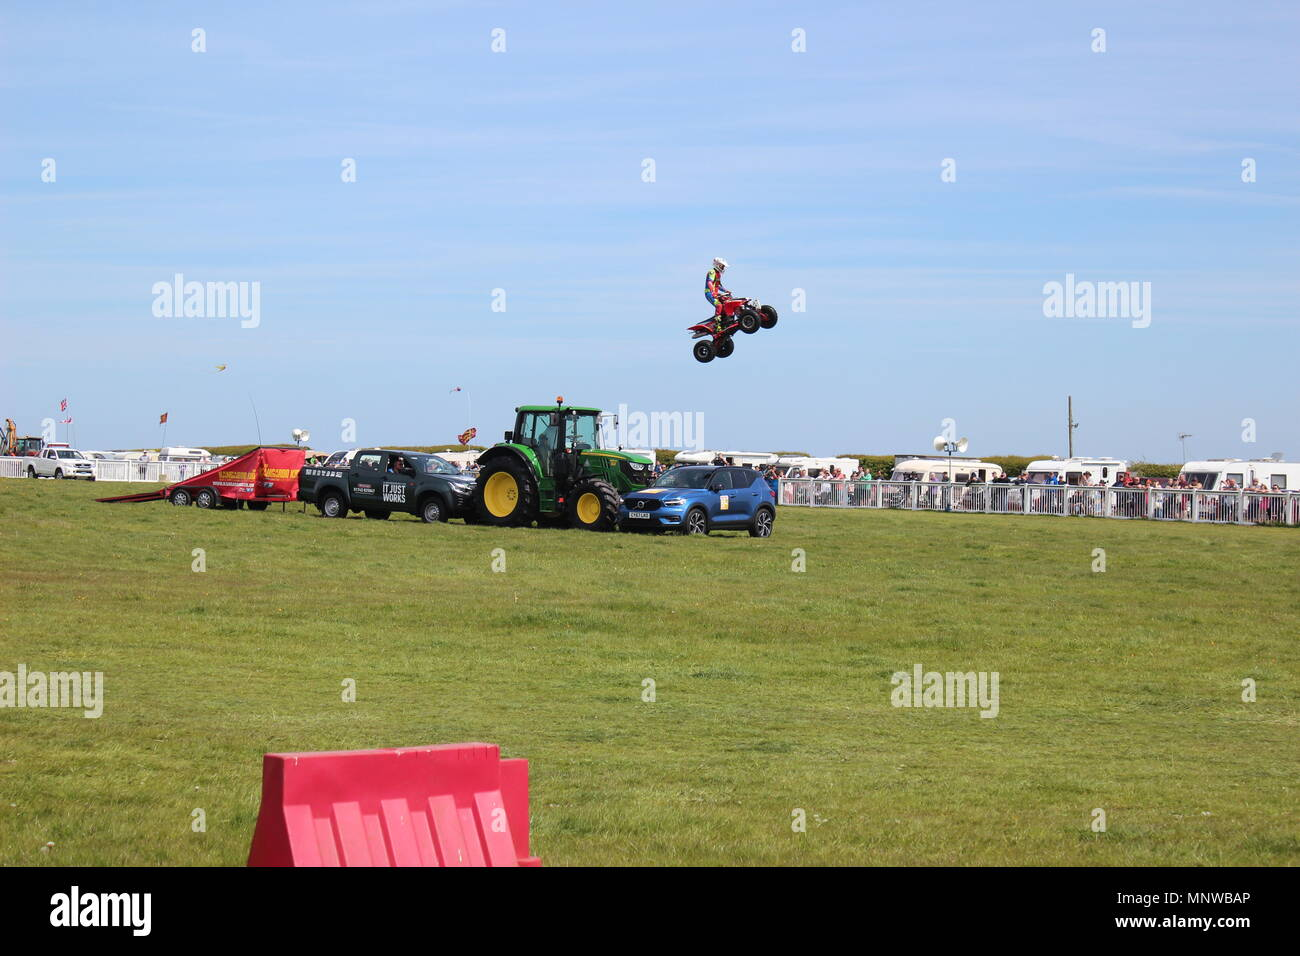 Anglesey Wales, 19 May 2018.   Matt Coulter, the Kangaroo Kid is a world class stuntman for the gold coast, Australia. his stunts are performed on quad bike, he is performing at the showground vintagerally Anglesey North Wales Credit: michael clarke/Alamy Live News - Stock Image